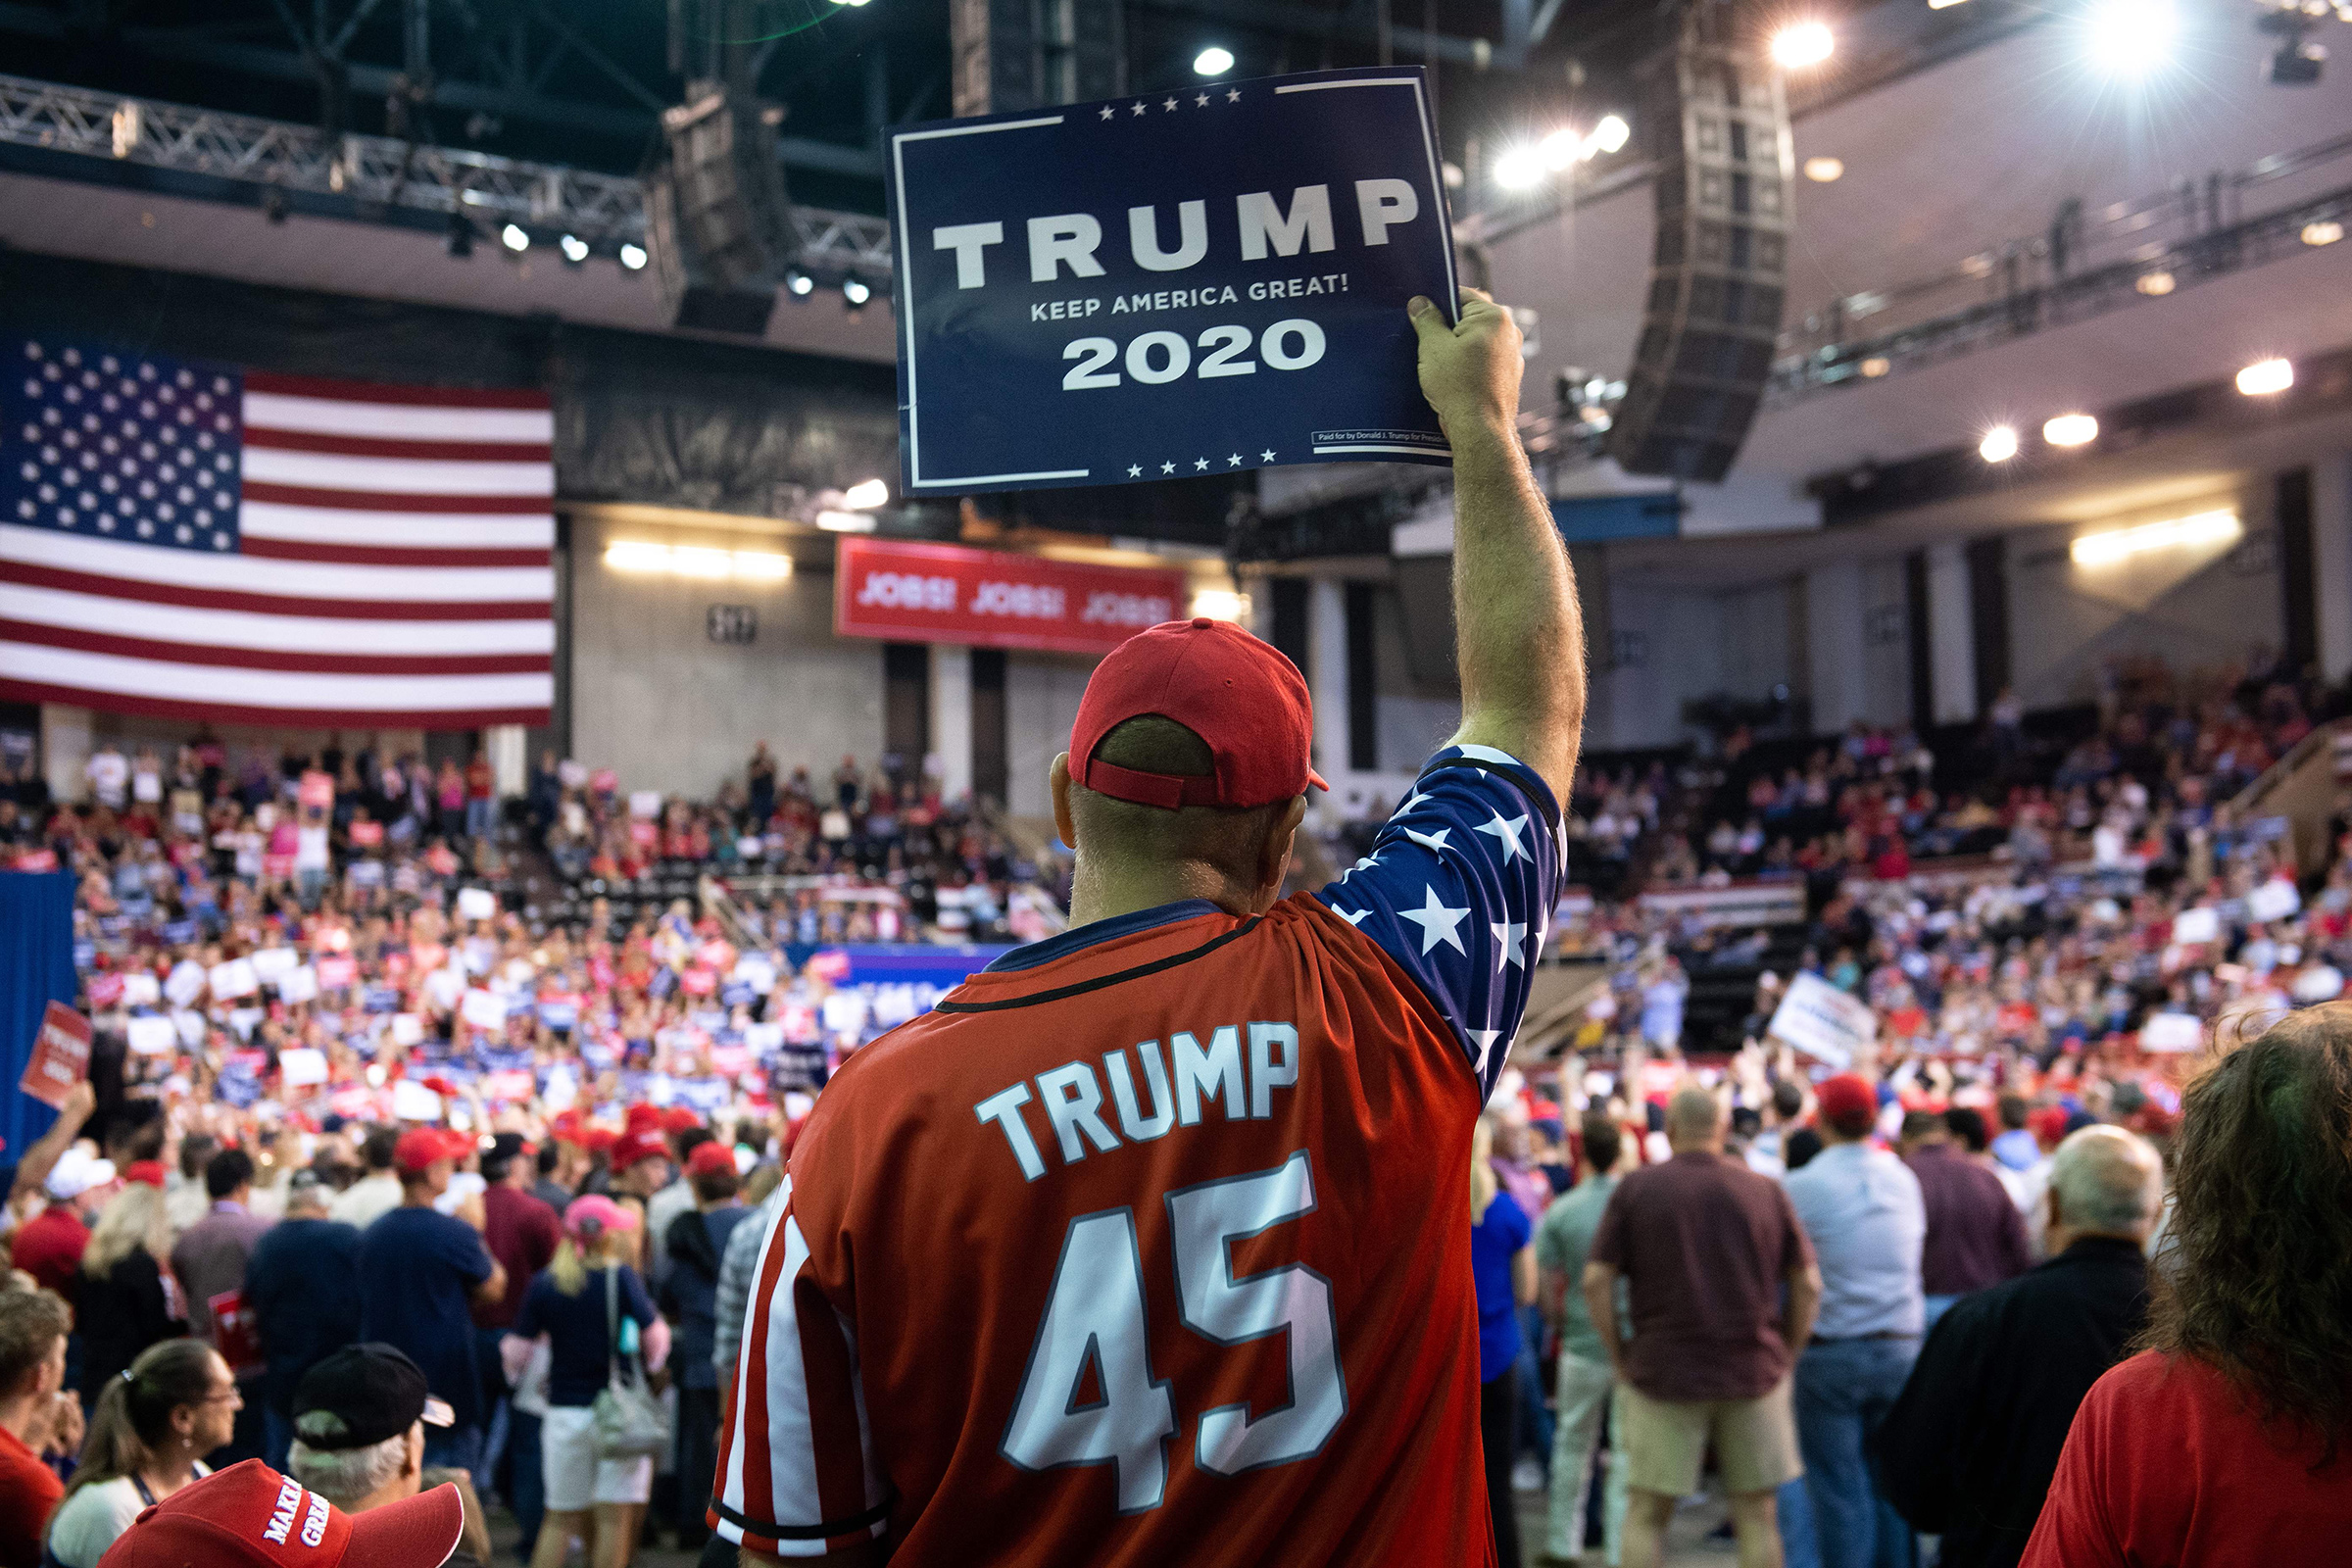 A Trump supporter holds up a sign as the US president speaks during a  Keep America Great  rally at Sudduth Coliseum in Lake Charles, La. on Oct. 11, 2019